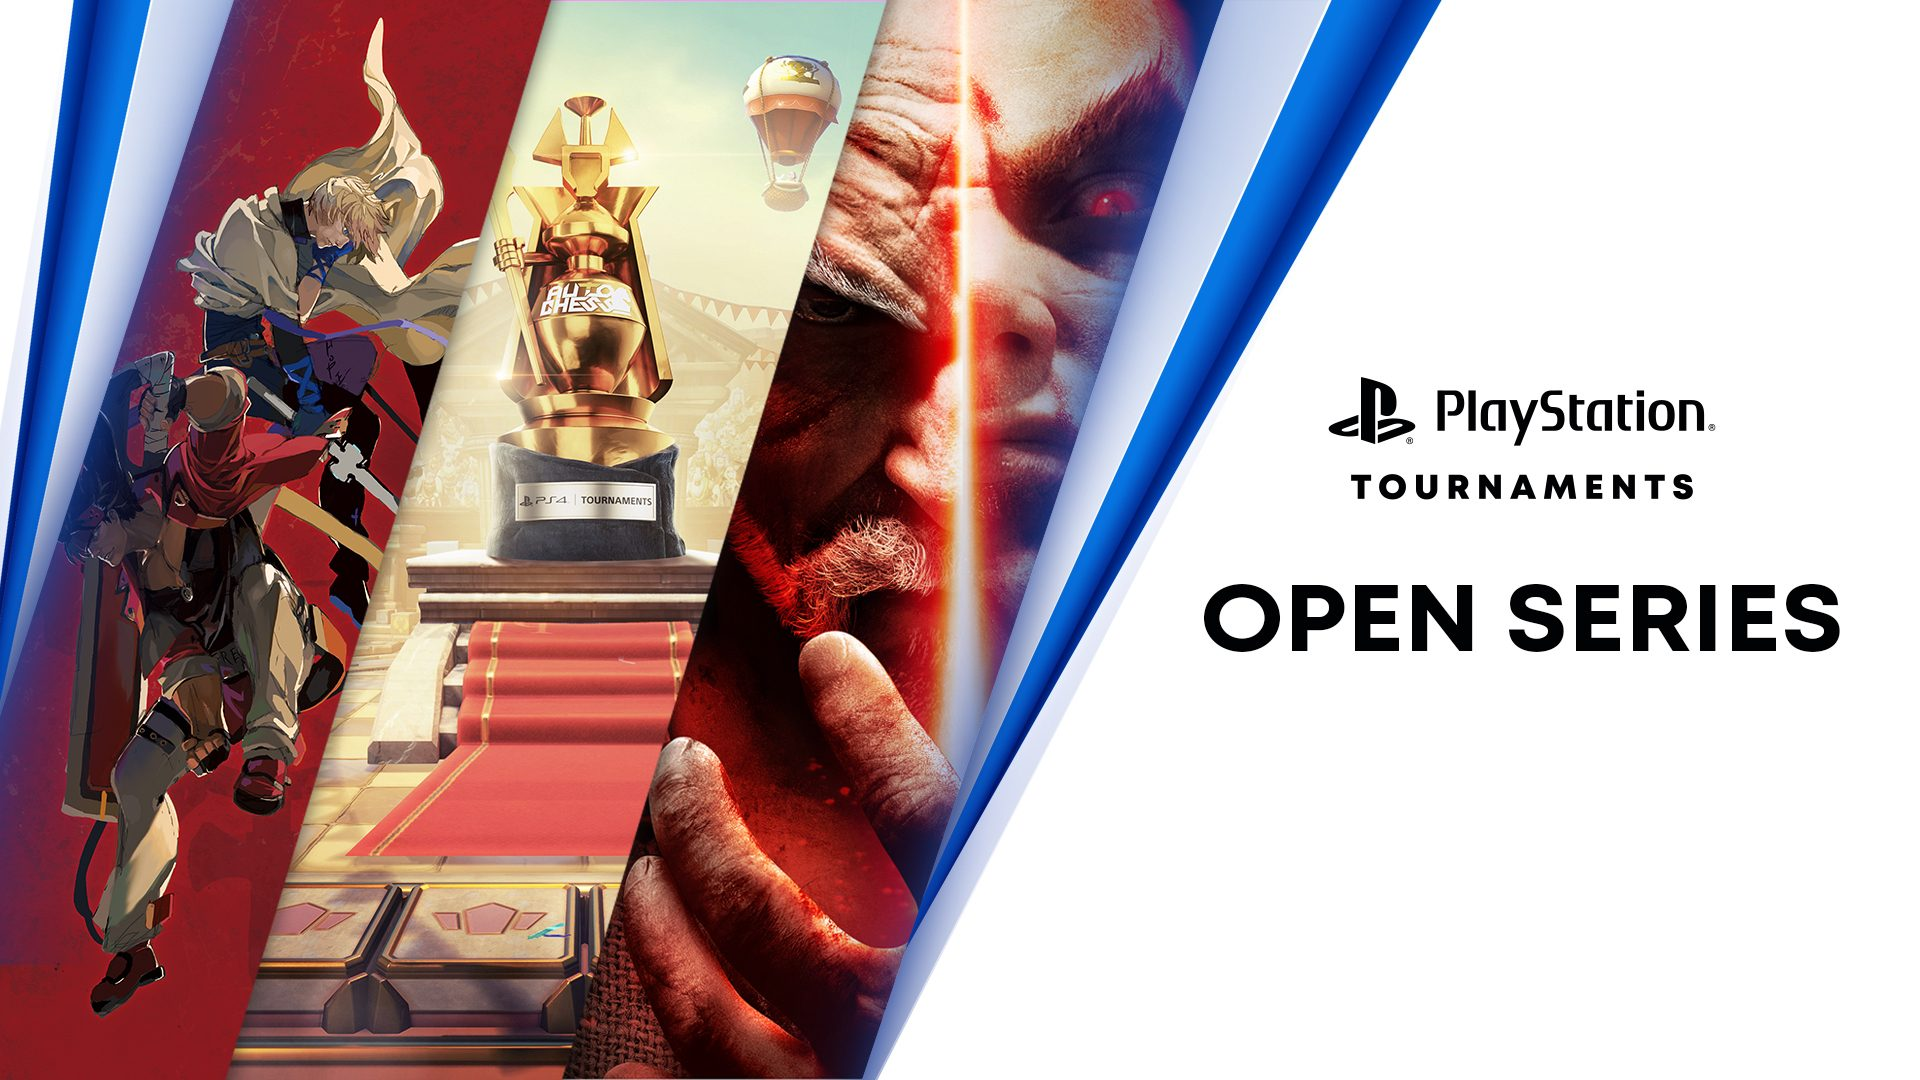 ps4-tournaments:-open-sequence-expands-with-three-new-tournaments